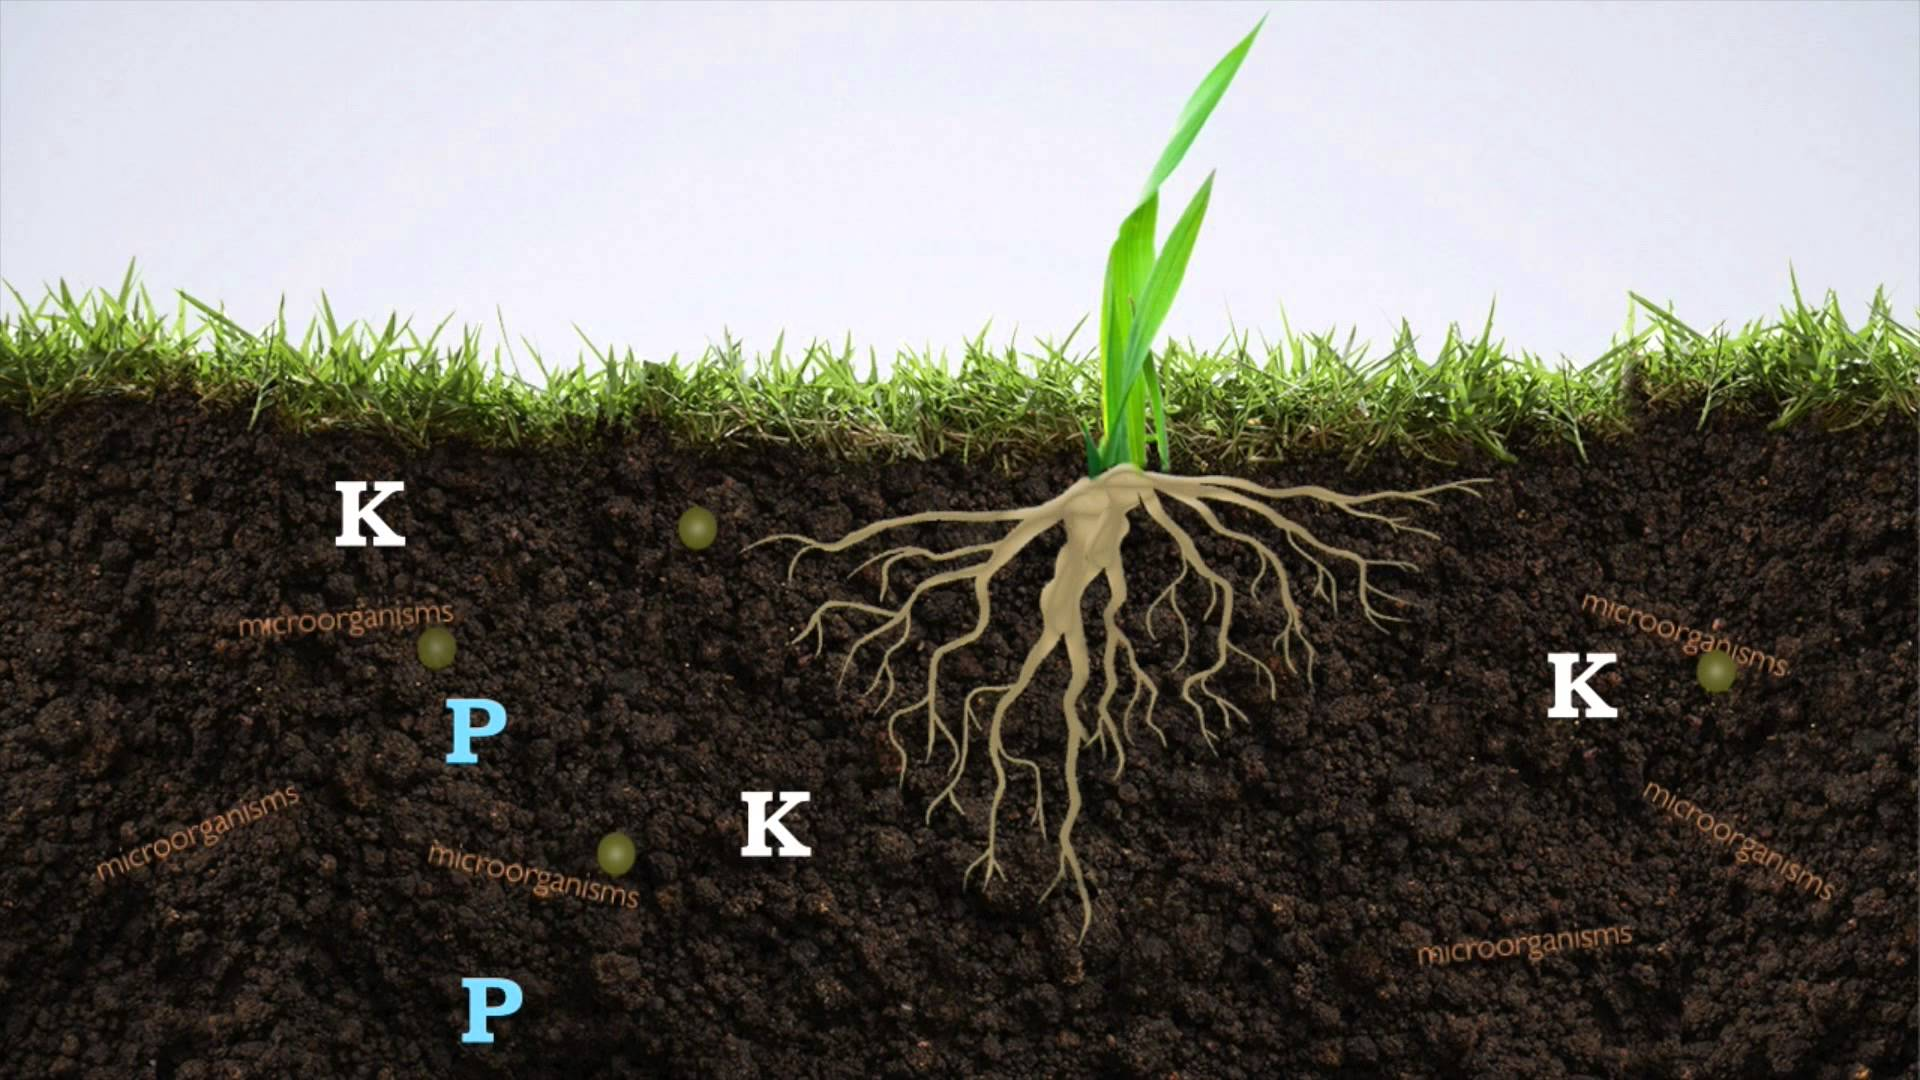 Source: www.youtube.com fig: Manure in soil